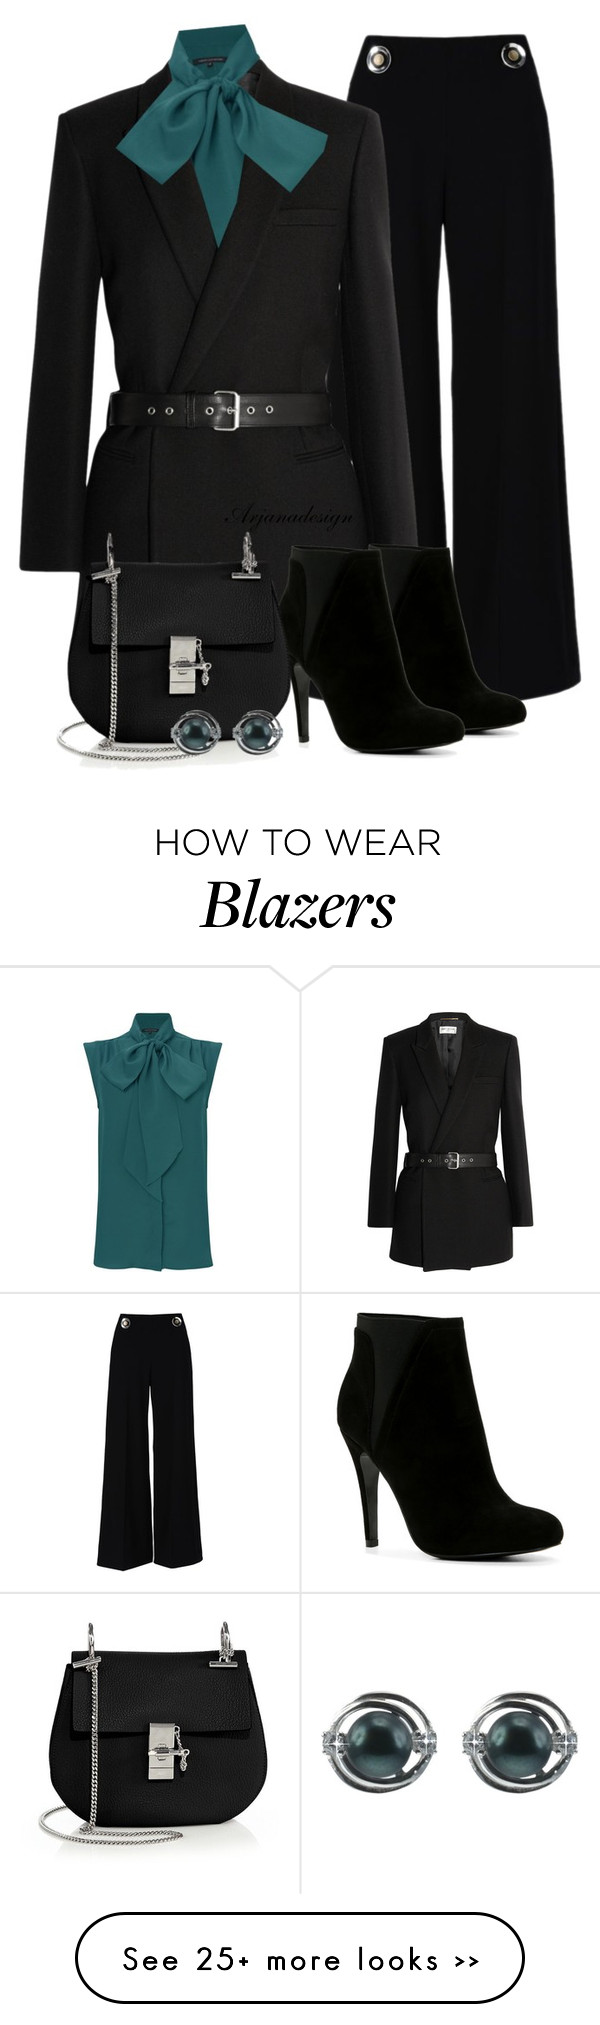 """""""Saint Laurent Belted Blazer"""" by arjanadesign on Polyvore featuring STELLA McCARTNEY, Yves Saint Laurent, French Connection, ALDO, Chloé, Lido Pearls, WorkWear, saintlaurent and fall2015"""